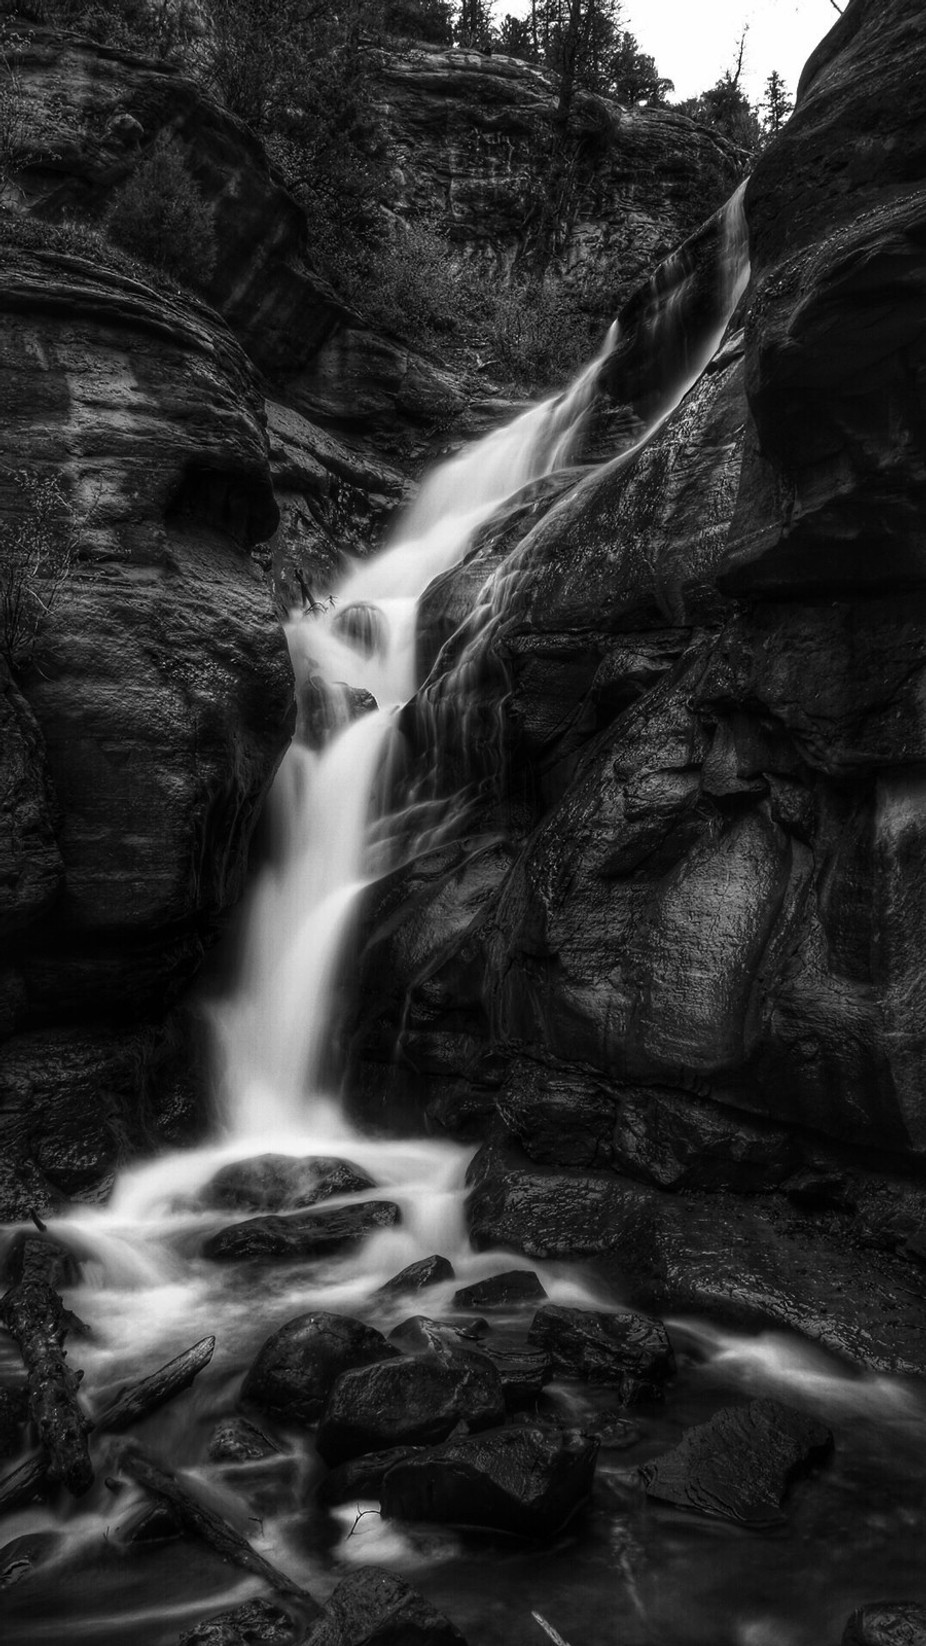 Yin Yang by Athena_B - The Water In Black And White Photo Contest